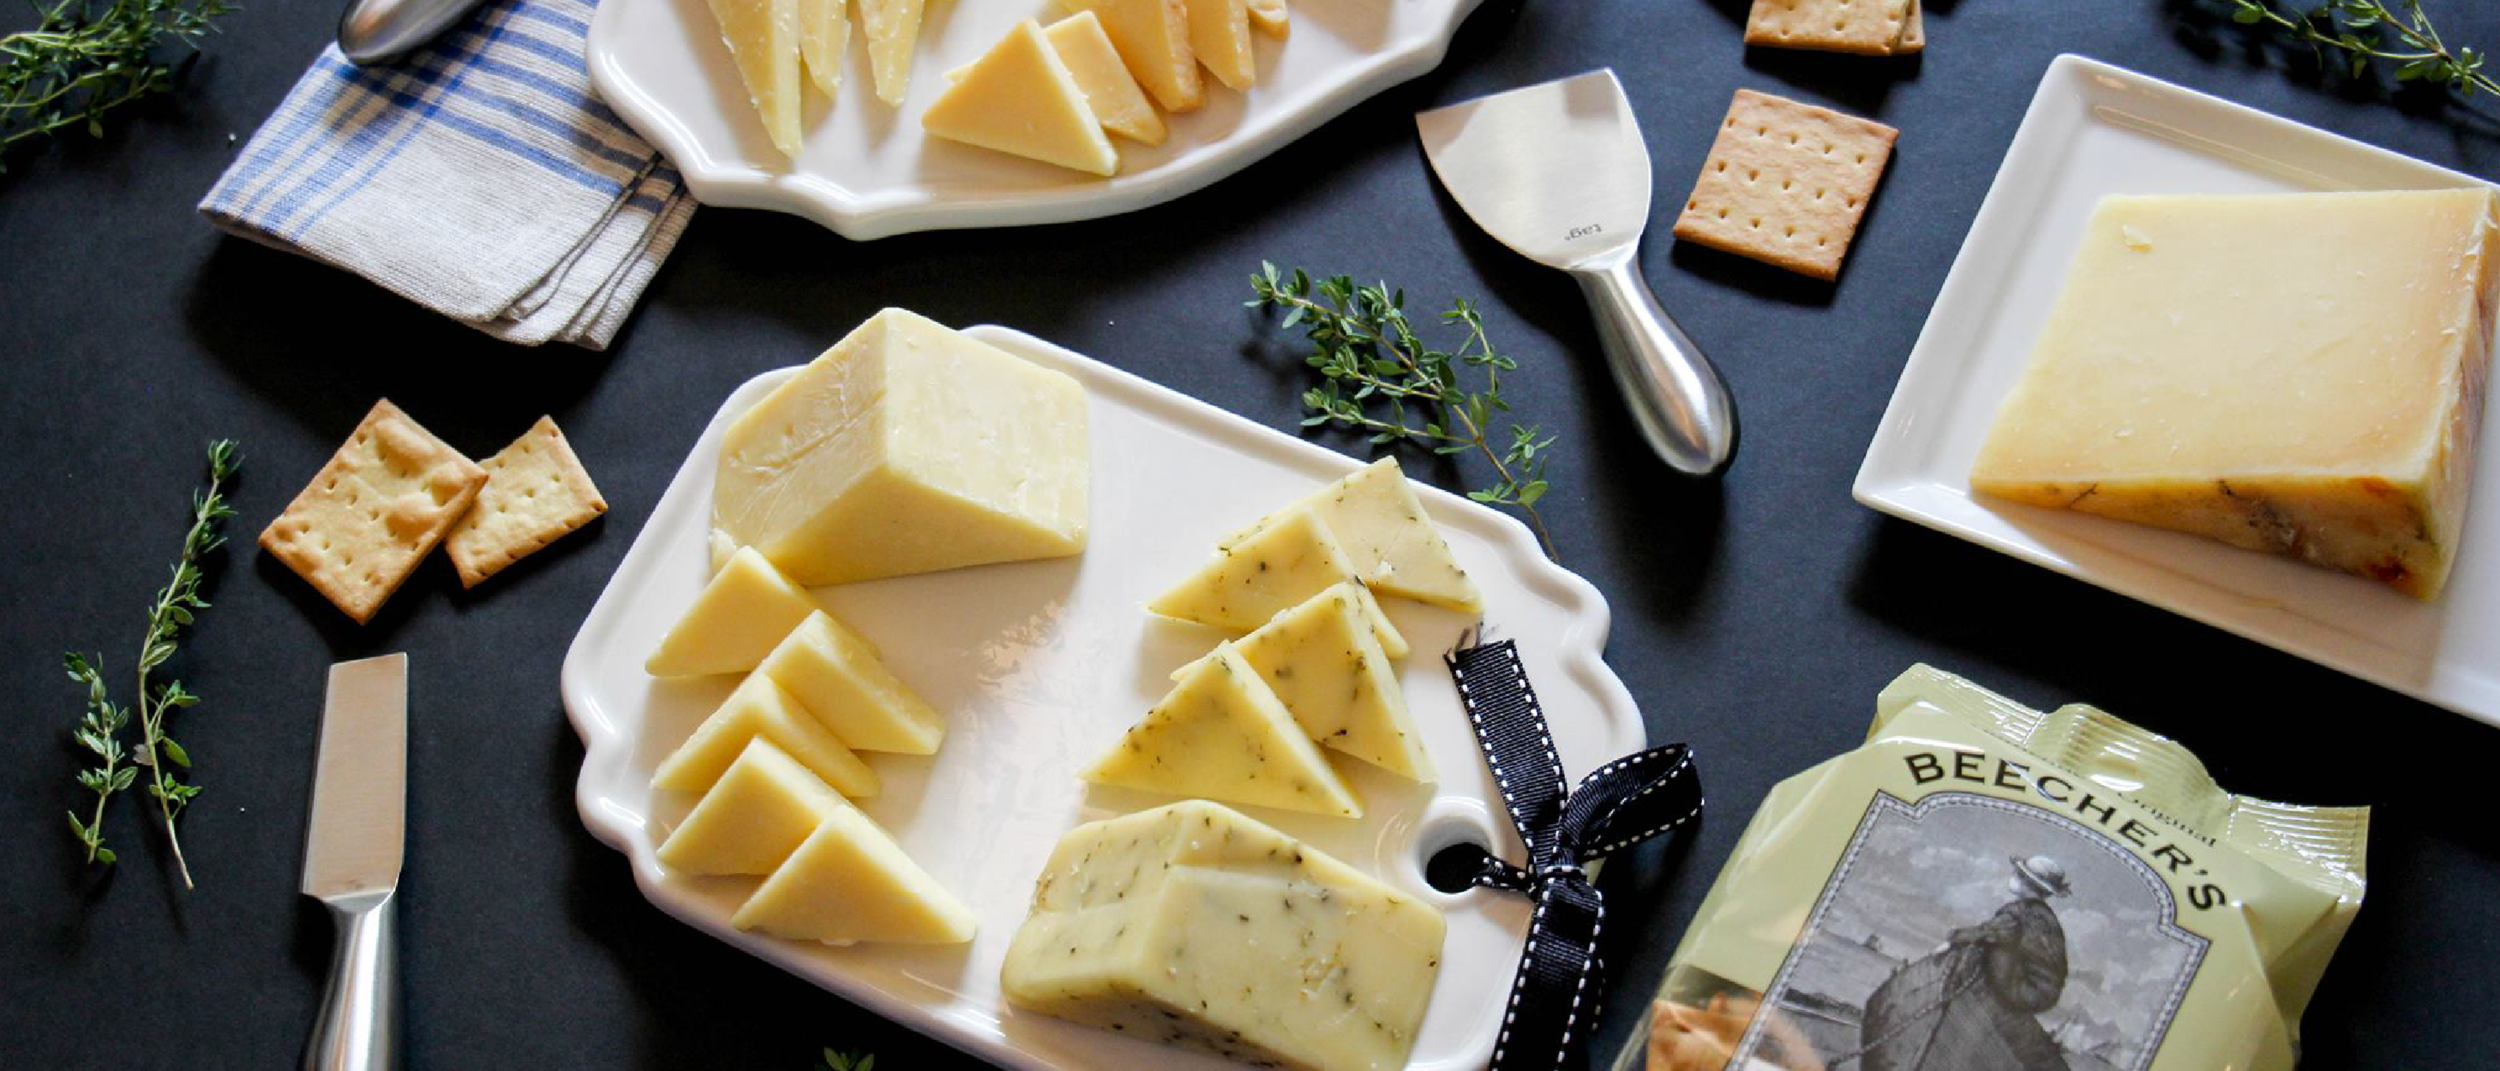 Say cheeese! This spread from Beechers will surely excite guests.